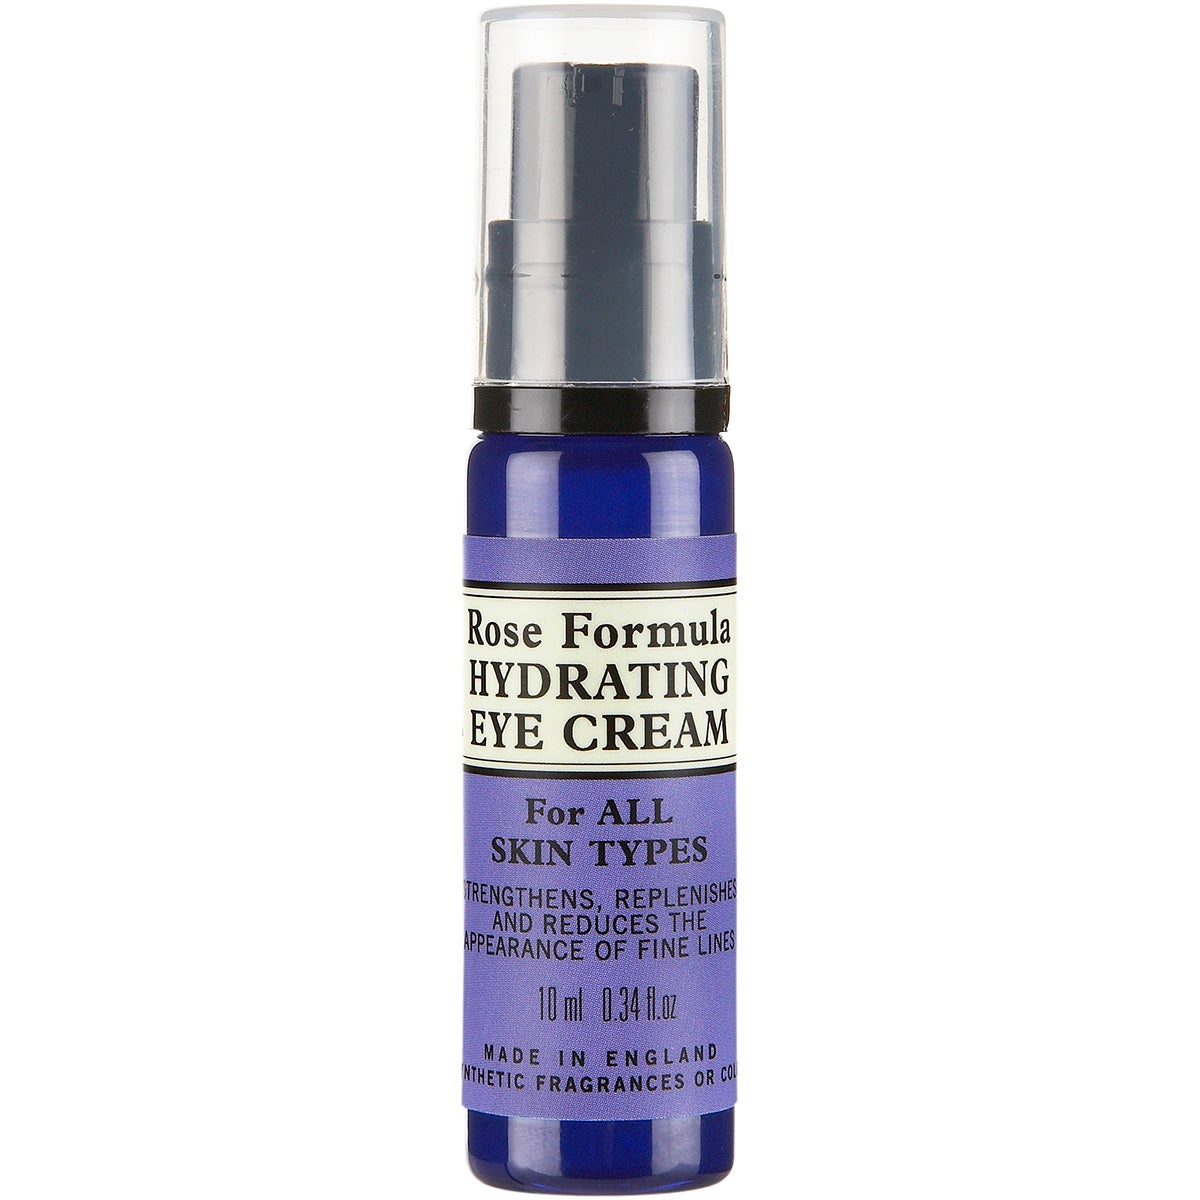 Neal's Yard Remedies Rose Formula Hydrating Eye Cream